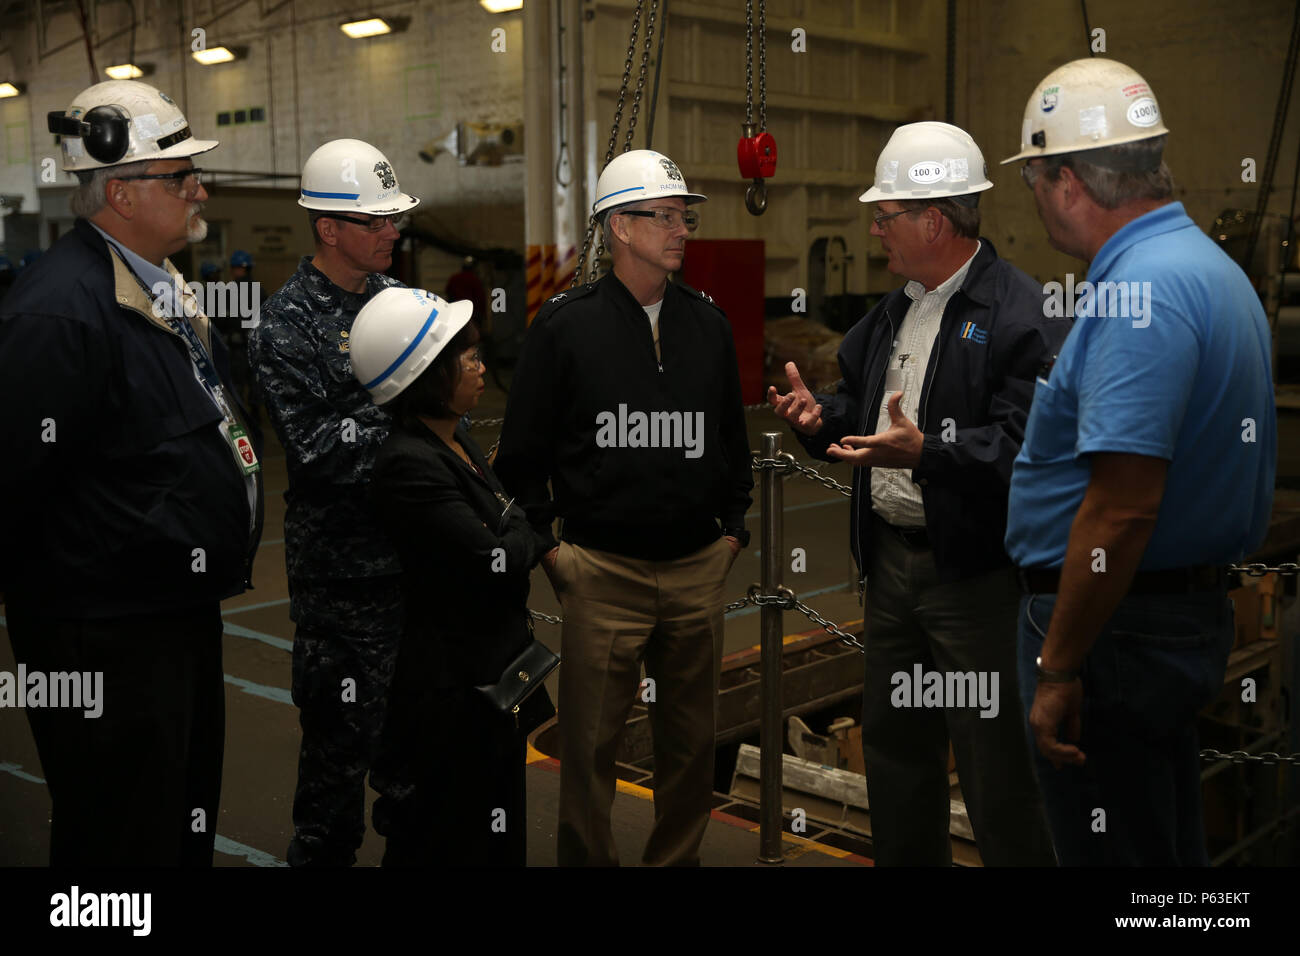 NEWPORT NEWS, Va. (Apr 20, 2016) -- Rear Adm. Thomas Moore takes a tour of Pre-Commissioning Unit Gerald R. Ford (CVN 78) with super intendants of Huntington Ingalls Industries Newport News Shipbuilding (HIINNS). Ford is the first of a new class of aircraft carriers currently under construction by HIINNS. (U.S. Navy photo by Mass Communication Specialist Seaman Apprentice Connor Loessin/Released) (This image was altered for security purpose by blurring out security badges) - Stock Image